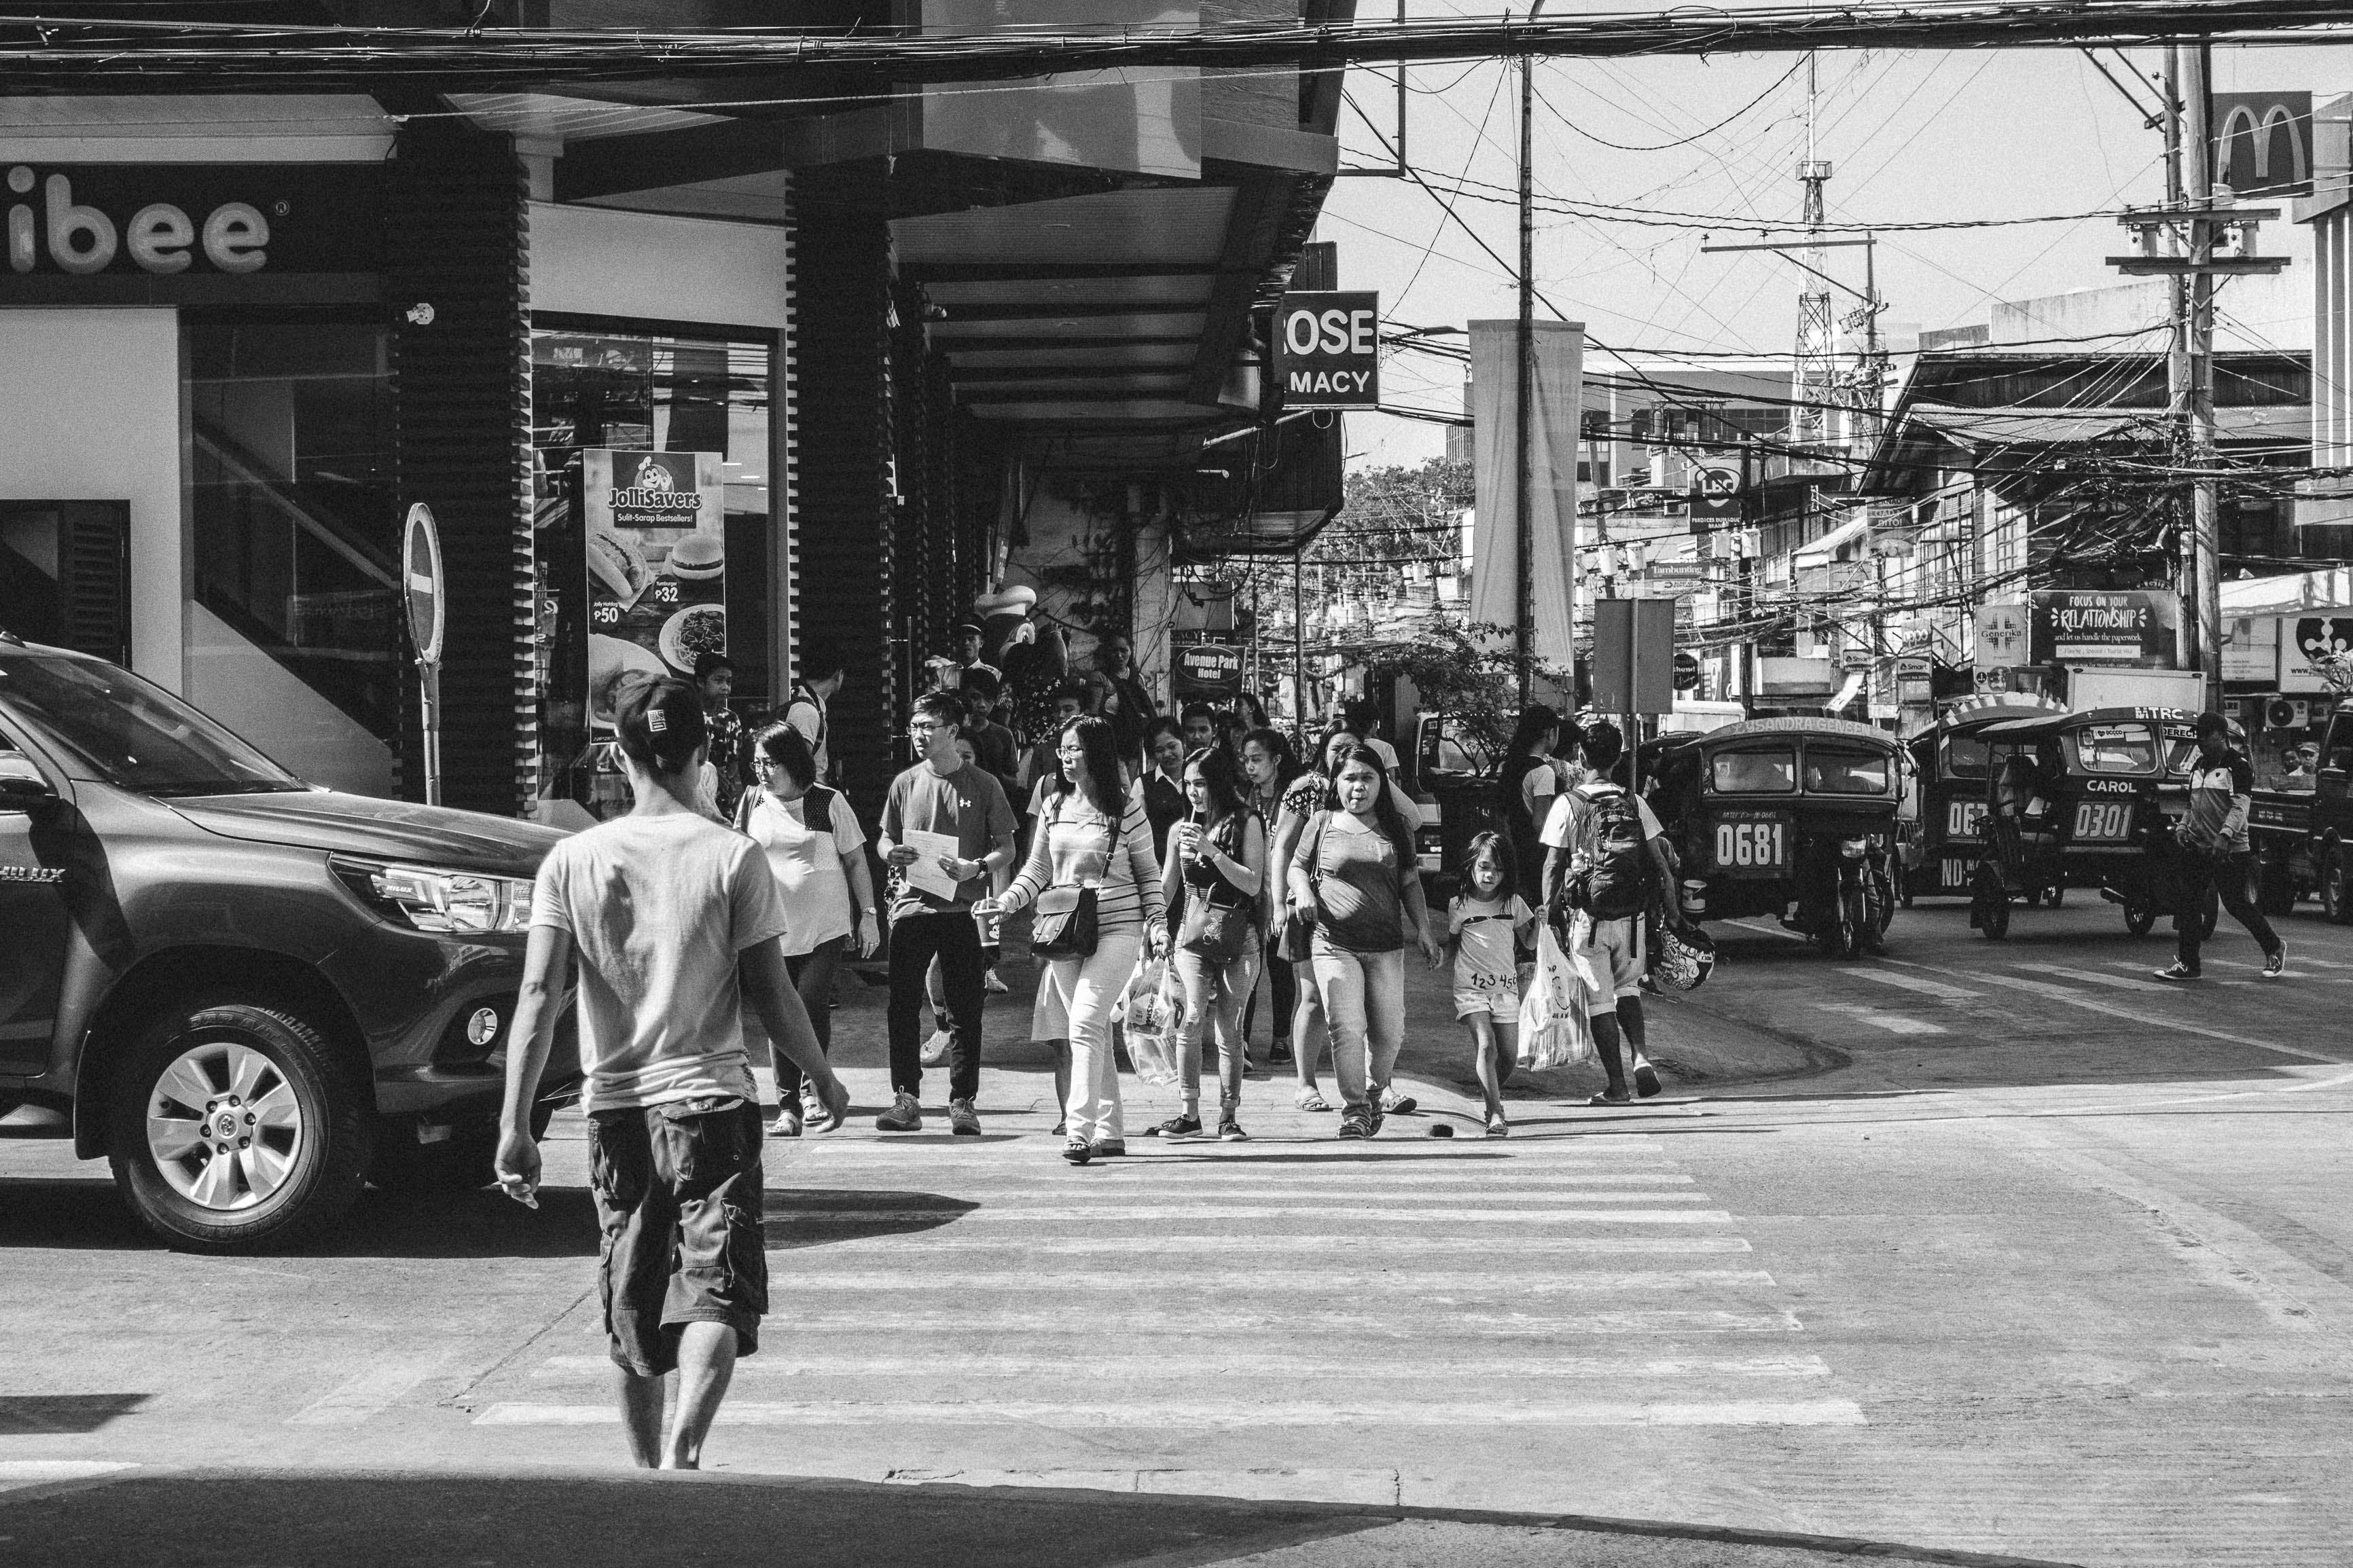 Monochrome Photography of People Crossing The Road